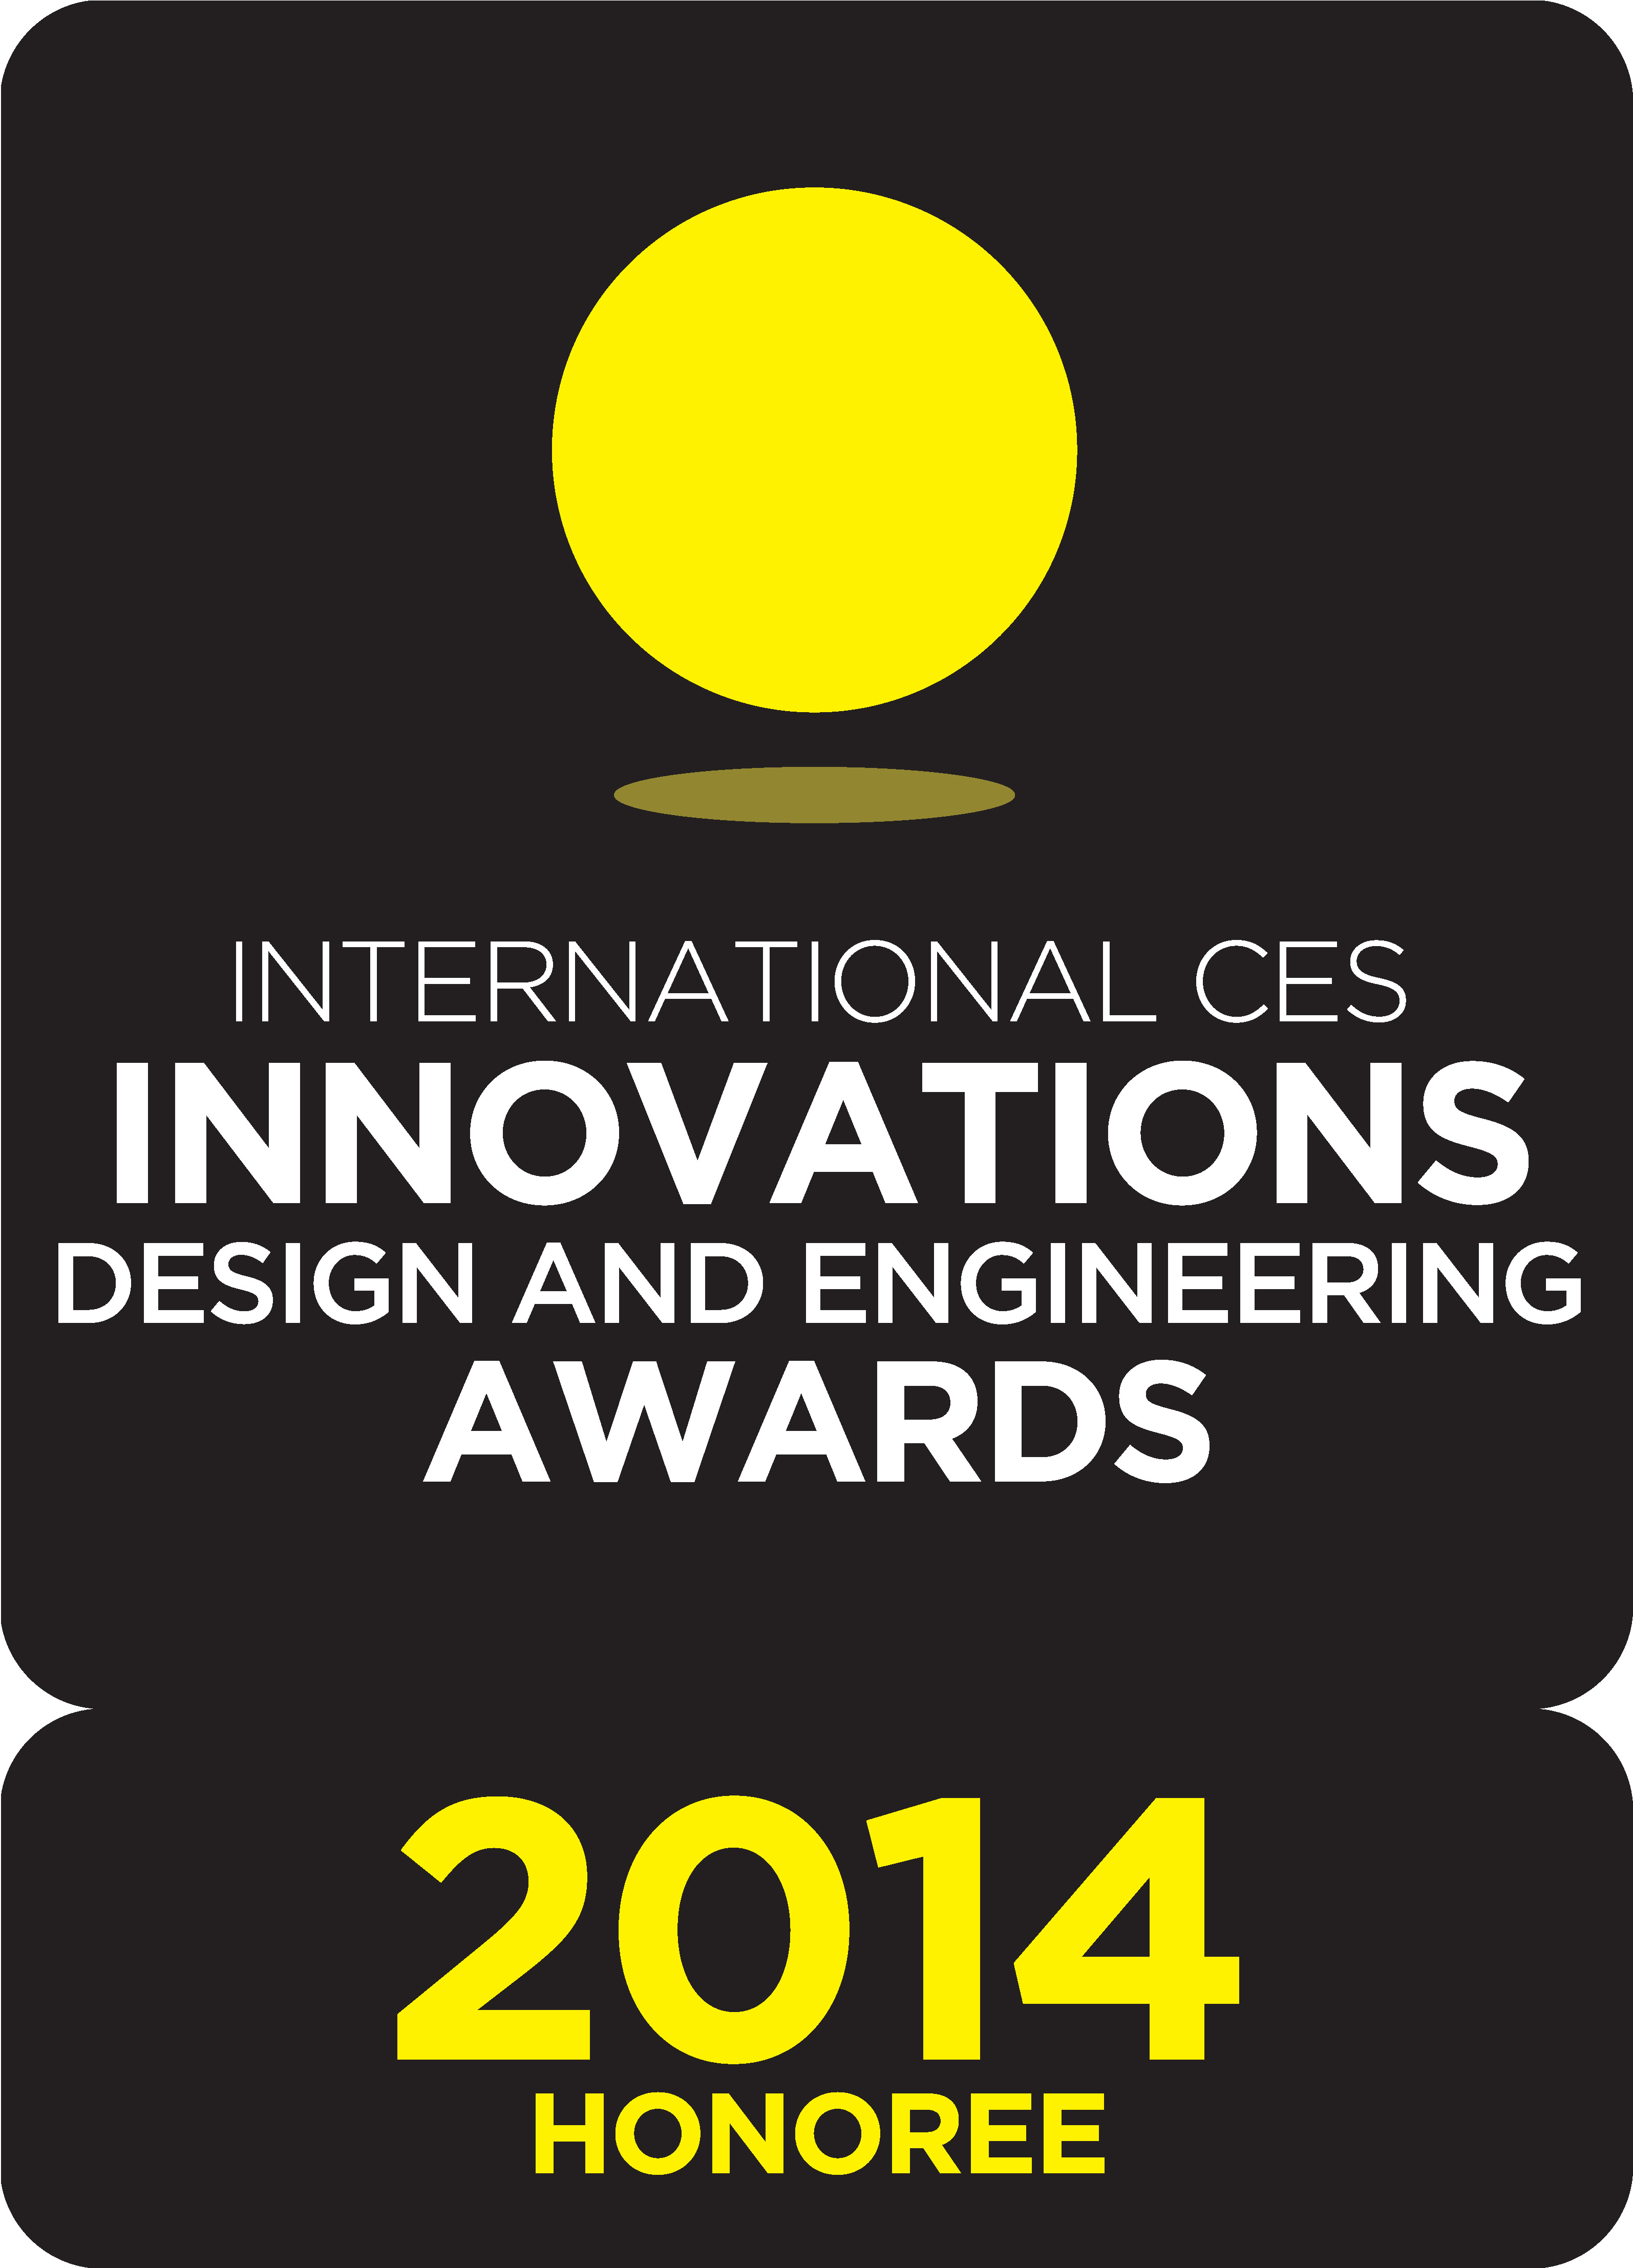 Logo of International CES® Innovations Awards 2014 for honoree